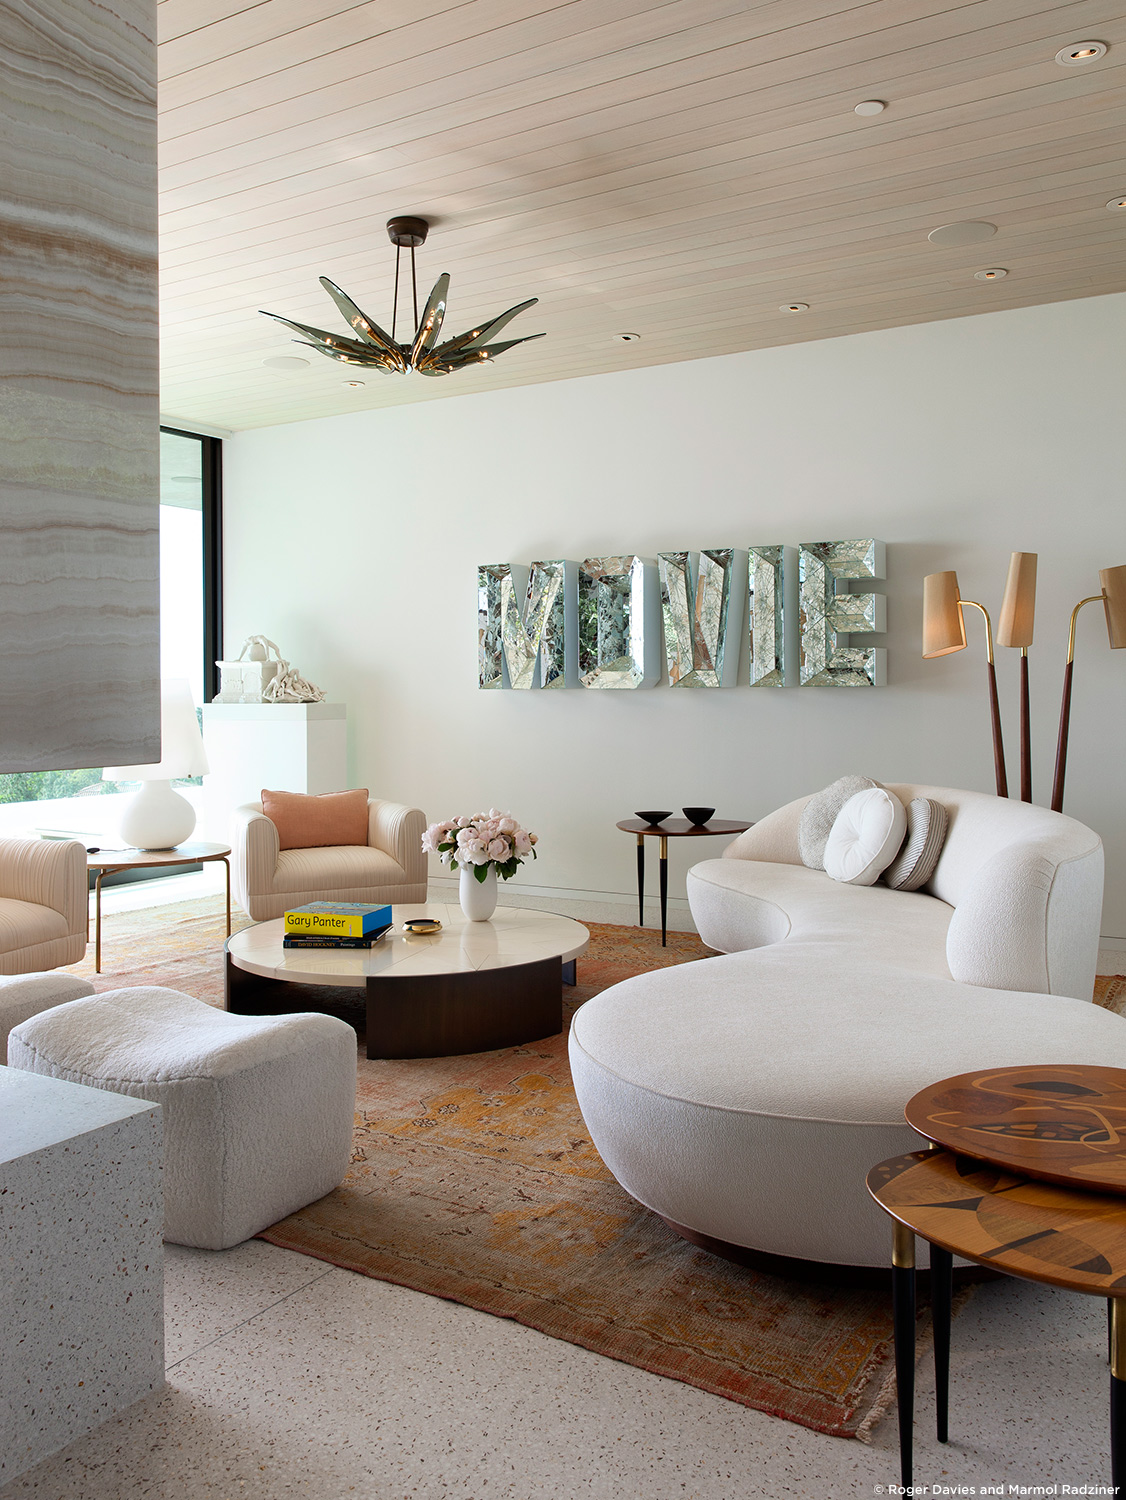 living room design by marmol radziner 10 Beautiful Living Room Design by Marmol Radziner 10 Beautiful Living Room Design by Marmol Radziner 06